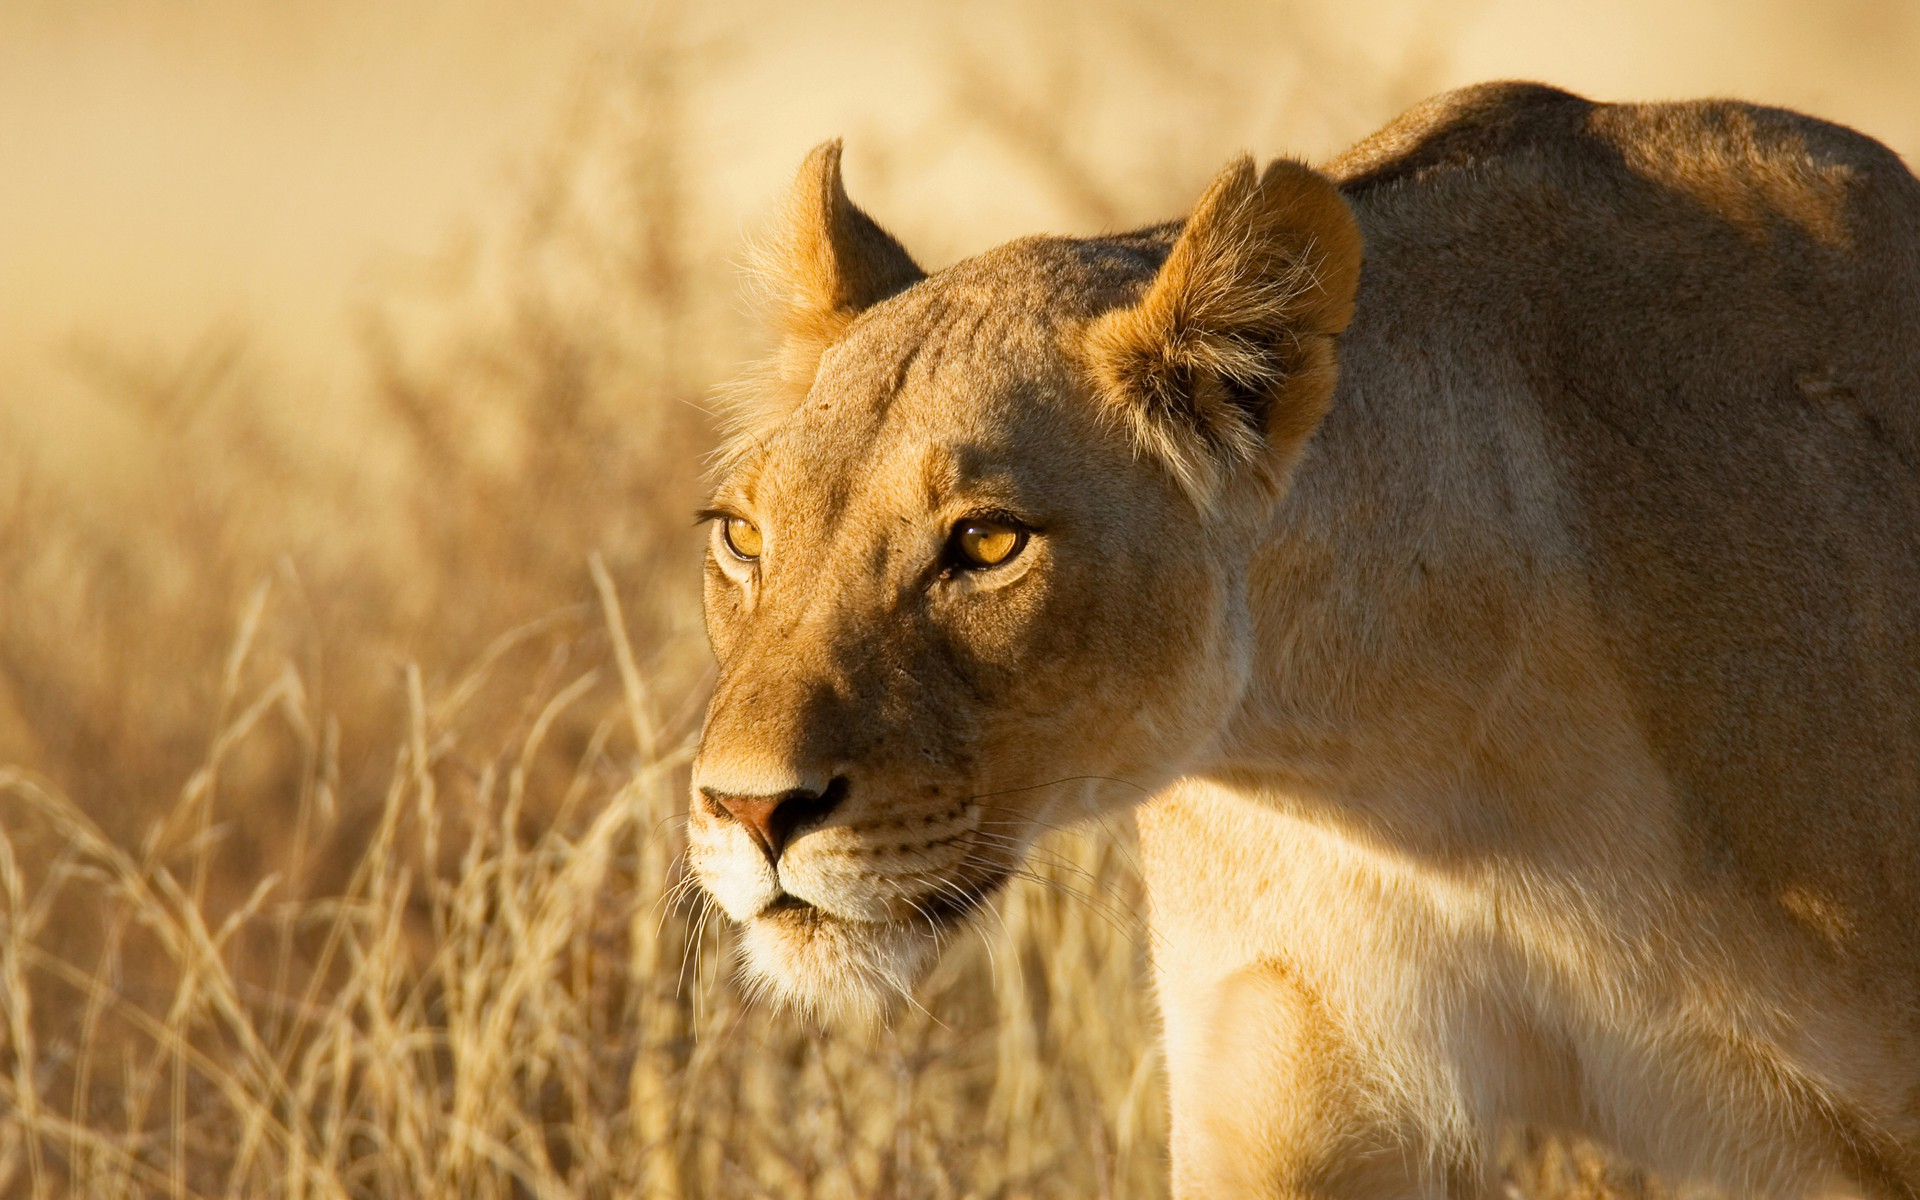 lions hunting animals hd lion wallpapers grass wildlife desktop background animal backgrounds mammals resolution mobile category wallup